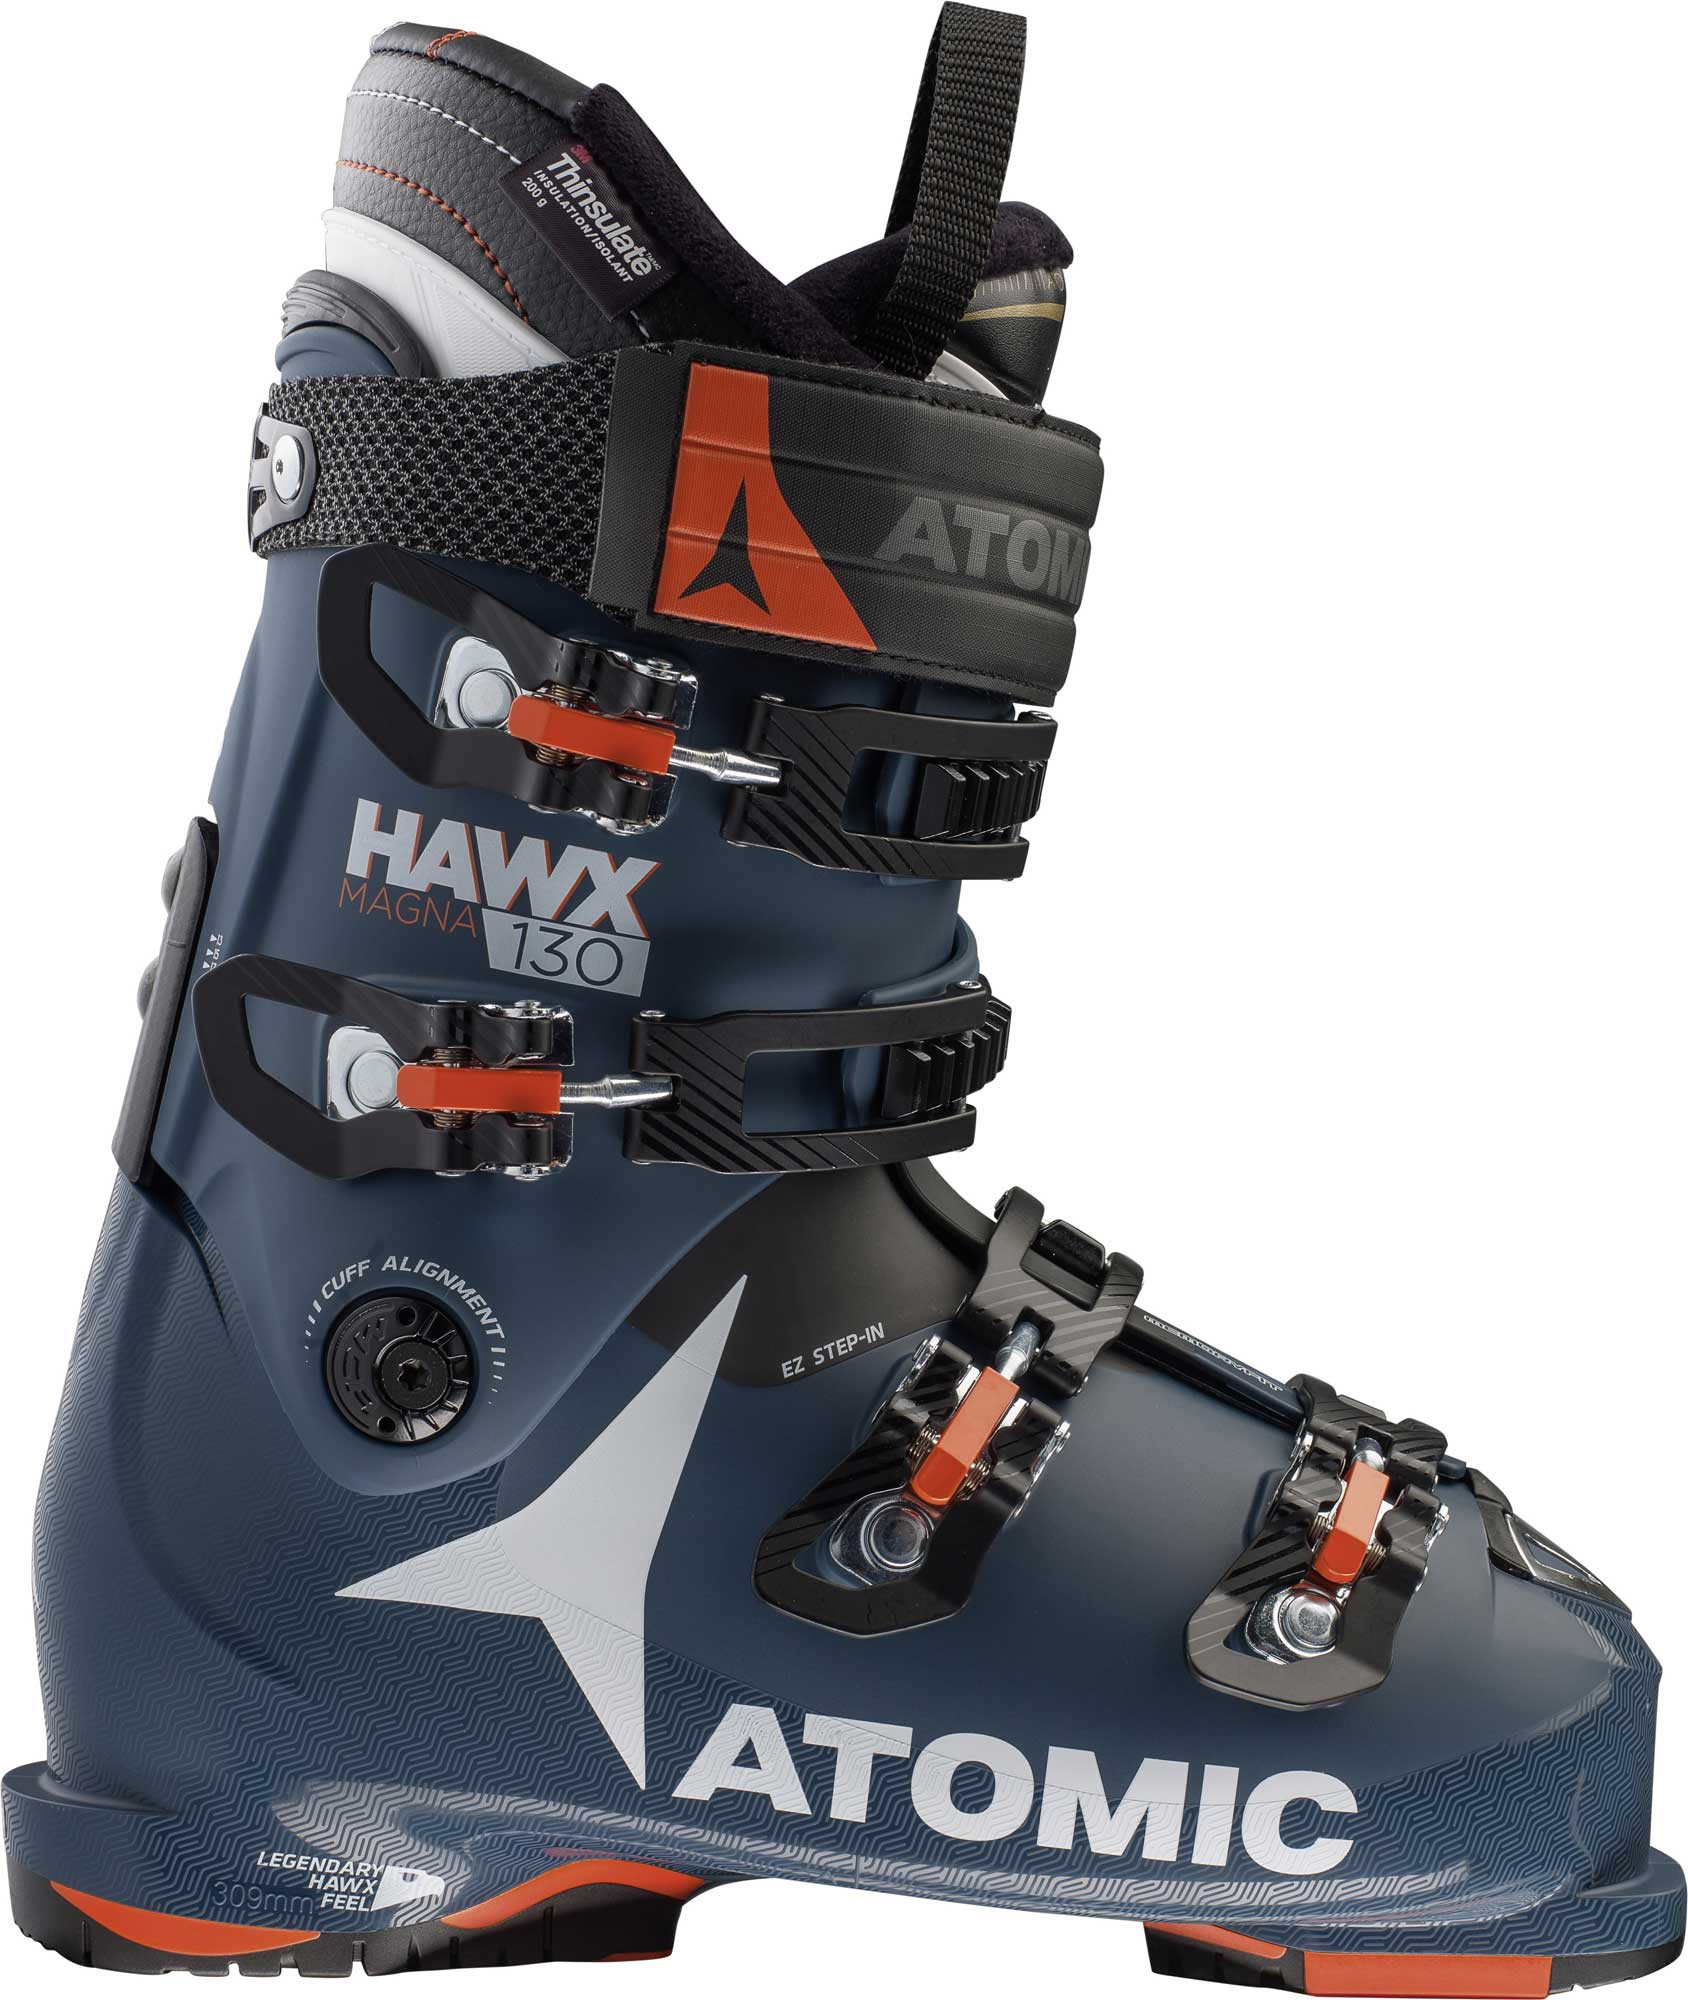 Atomic Hawx Magna 130 - All Mountain Skischuhe